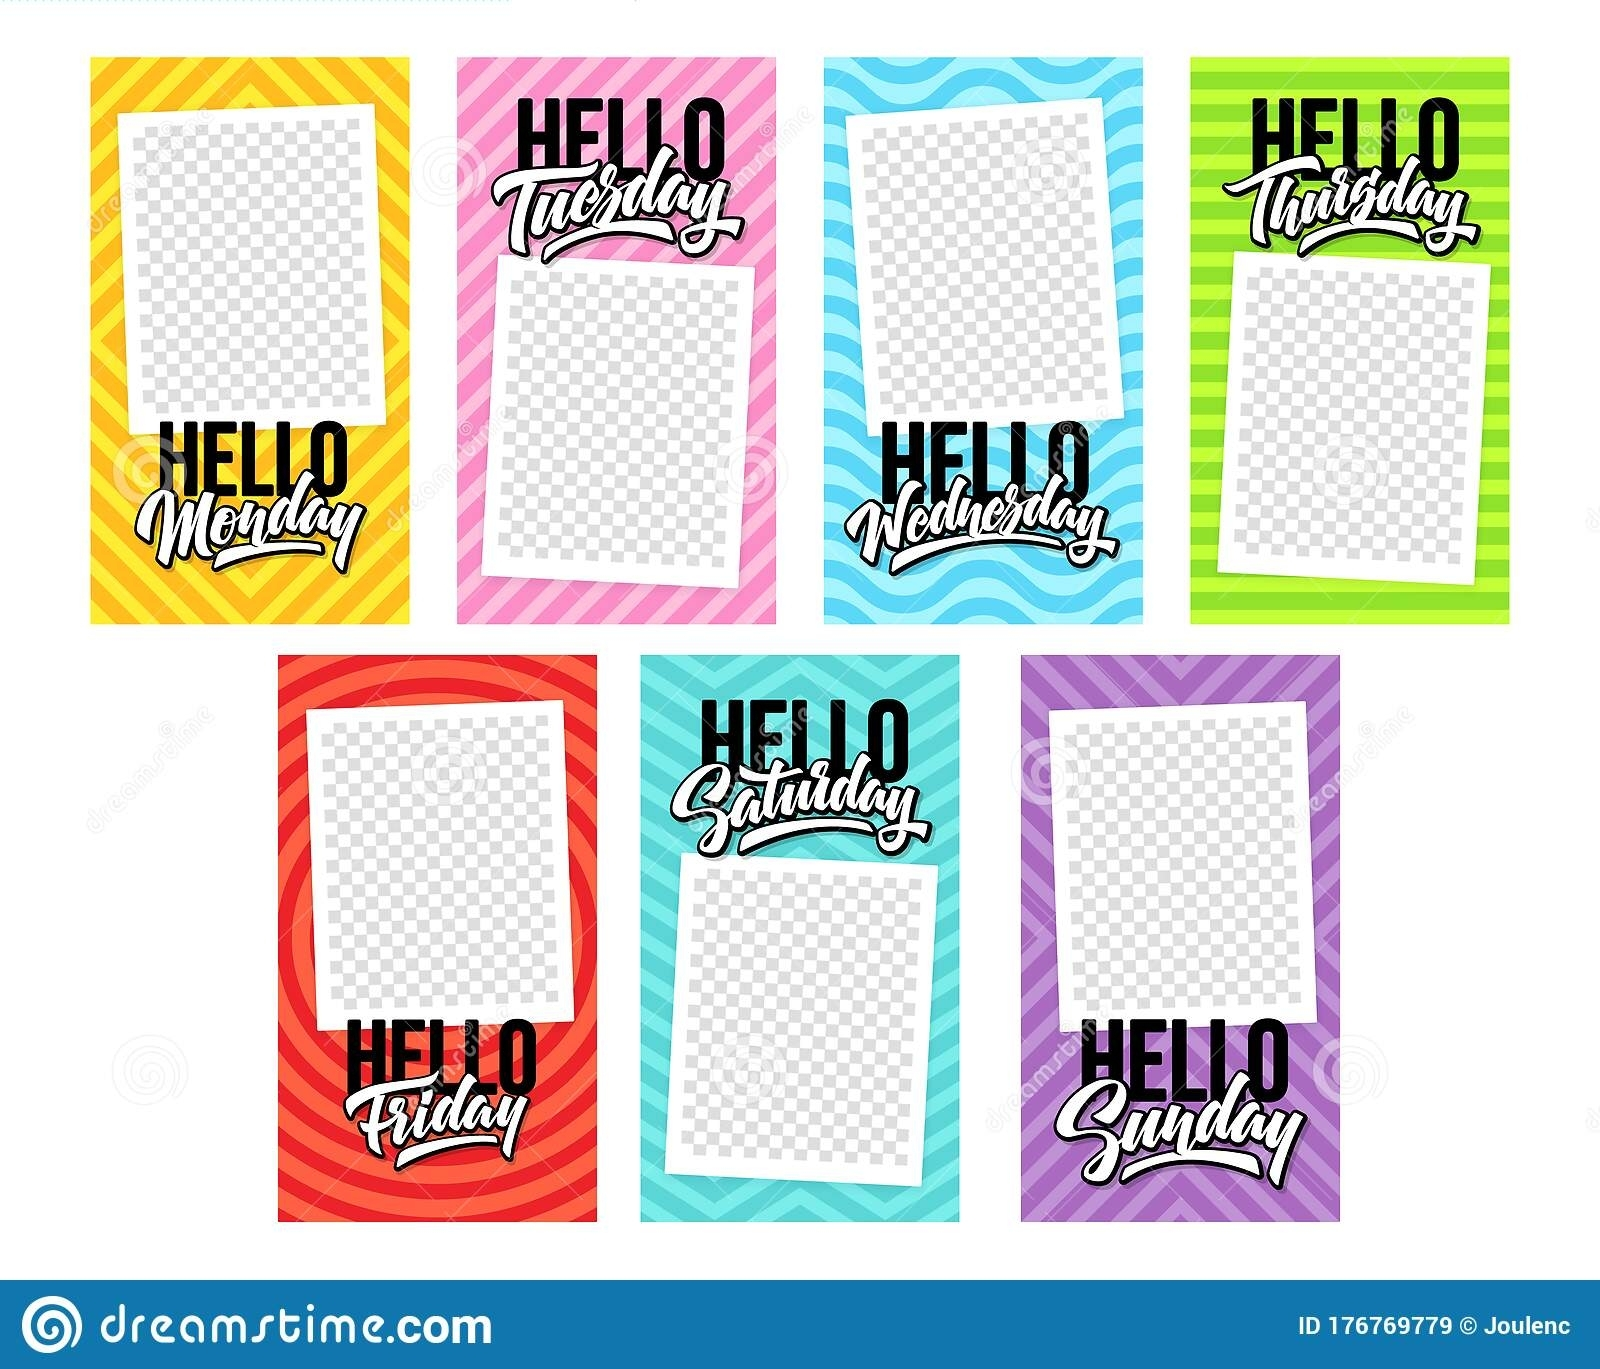 Hello 7 Days Of The Week With Photo Template For Stories